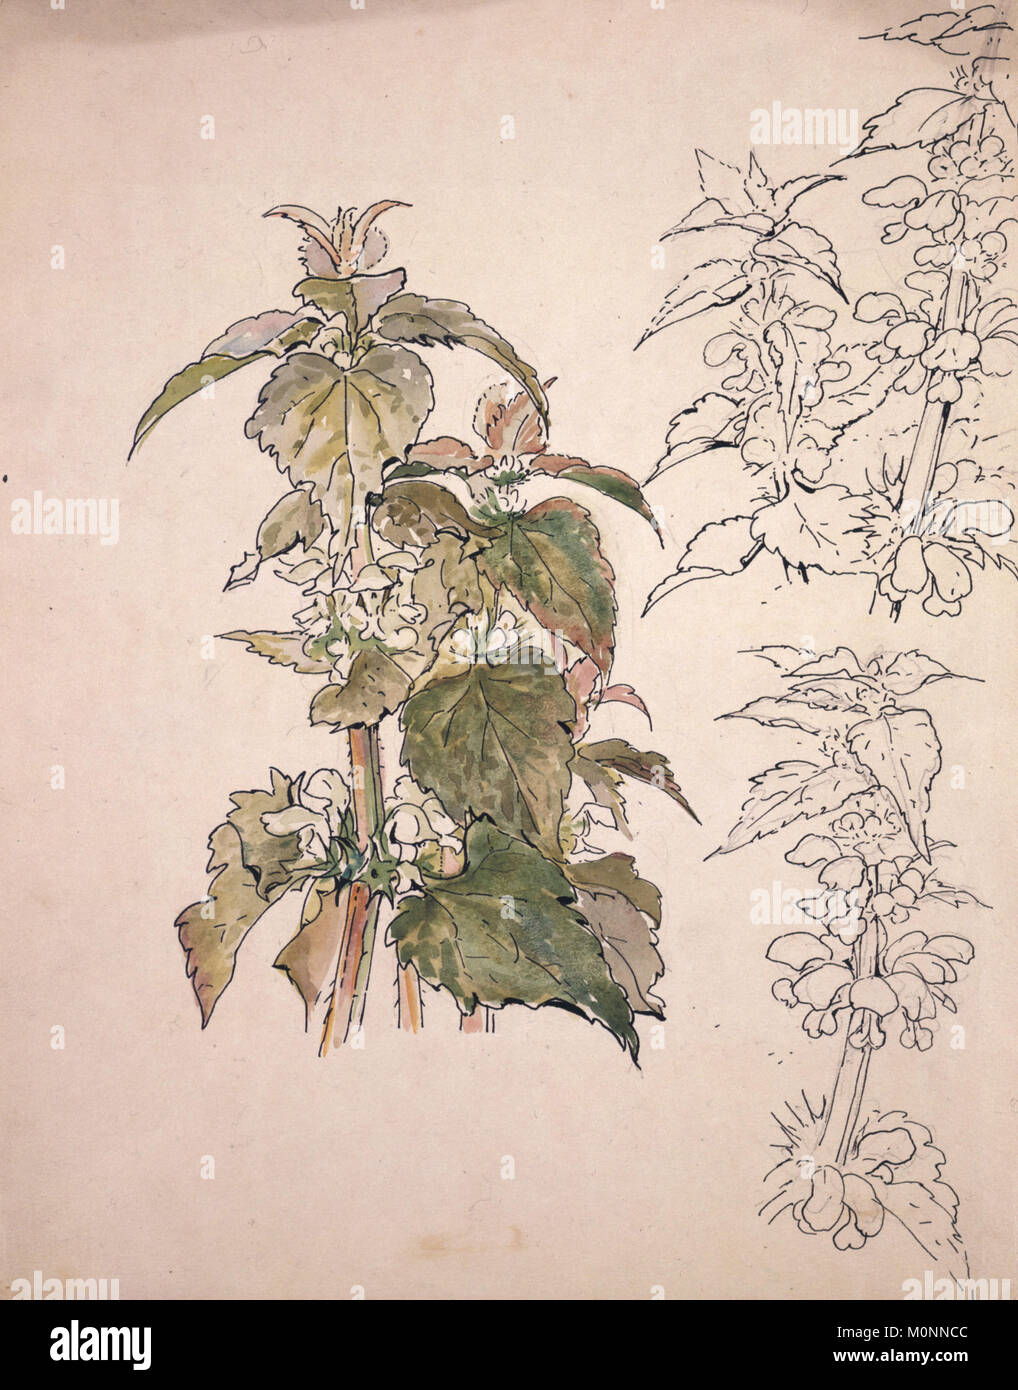 Agricultural Horticultural botanical drawing of a indigenous plant by Beatrix Potter - Stock Image